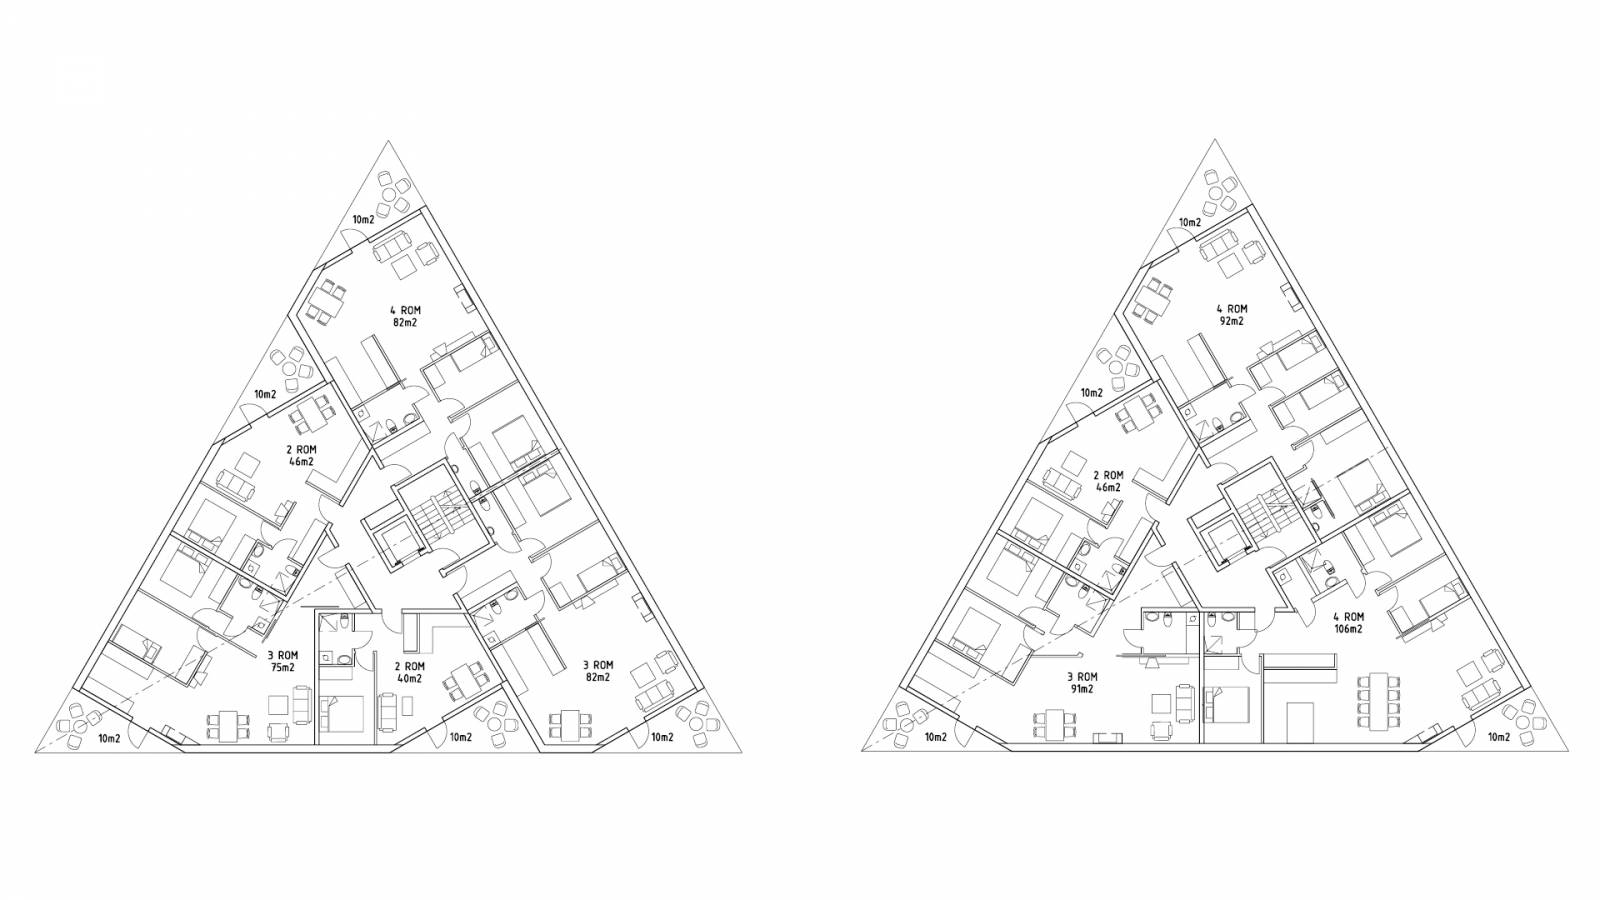 HOUSING TYPICAL PLANS - Økern Centre - SPOL Architects